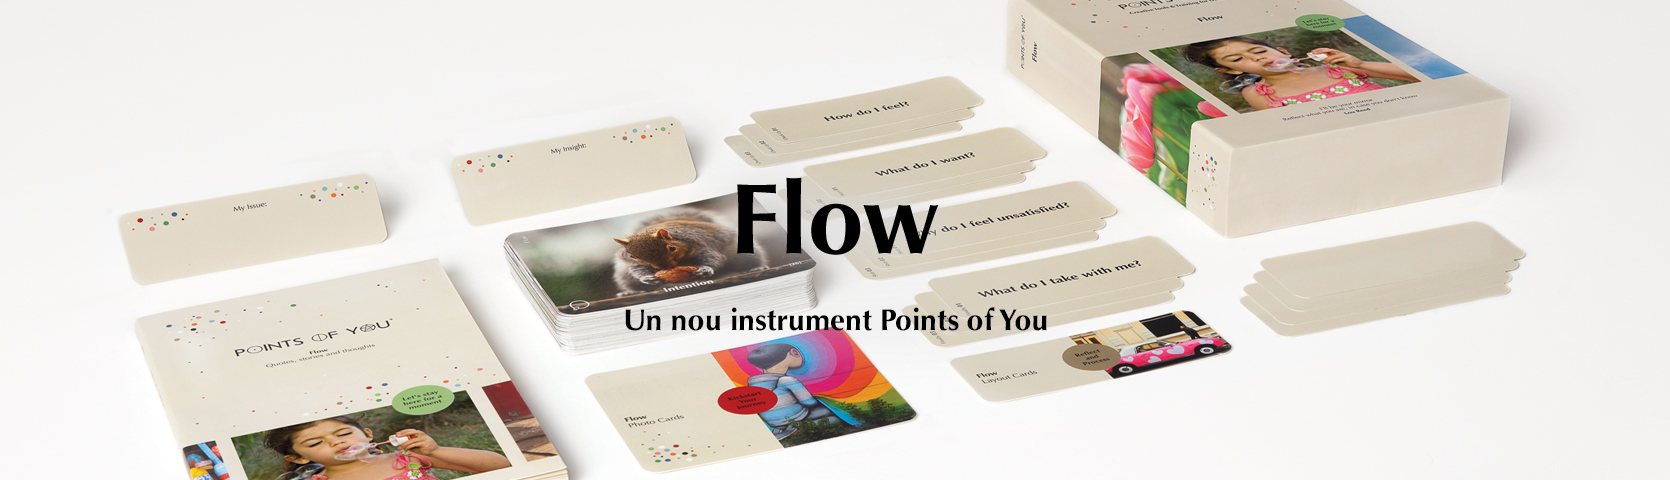 Flow_HOME-PAGE-IMAGE_RO